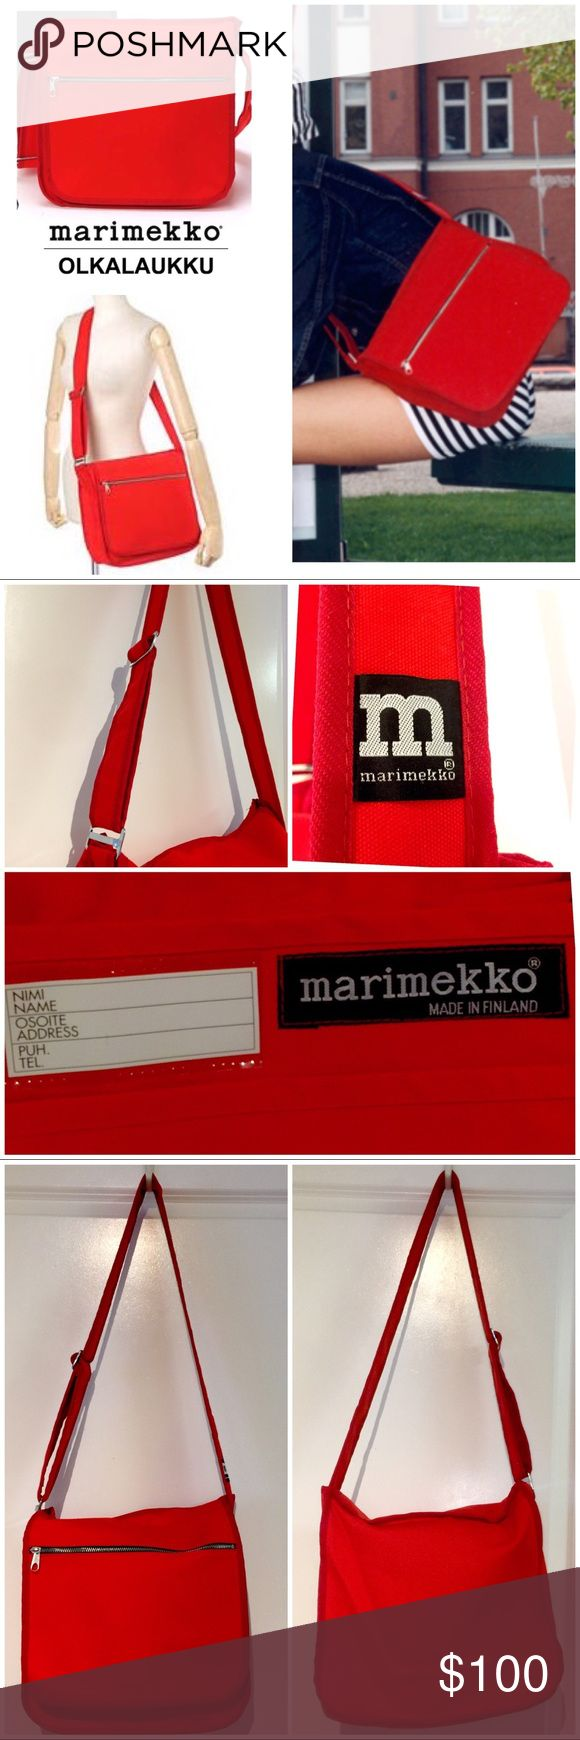 "NEW! Marimekko Red OLKALAUKKU Messenger Bag❤️ NEW! Marimekko OLKALAUKKU Red❤️ Shoulder & Messenger Bag approx:11"" L x 12"" W x 5-1/4"" D  Adjustable shoulder strap: 23"" - 46"" The ultimate messenger bag! 😍Holds your laptop, books, & more in this spacious, 100% cotton canvas bag! Two inside pockets provide organization for smaller items. Front flap features a zip pocket. Brand new- never used no tags. Interior had a sticker removed so a little residue from that left behind- barely noticeable…"